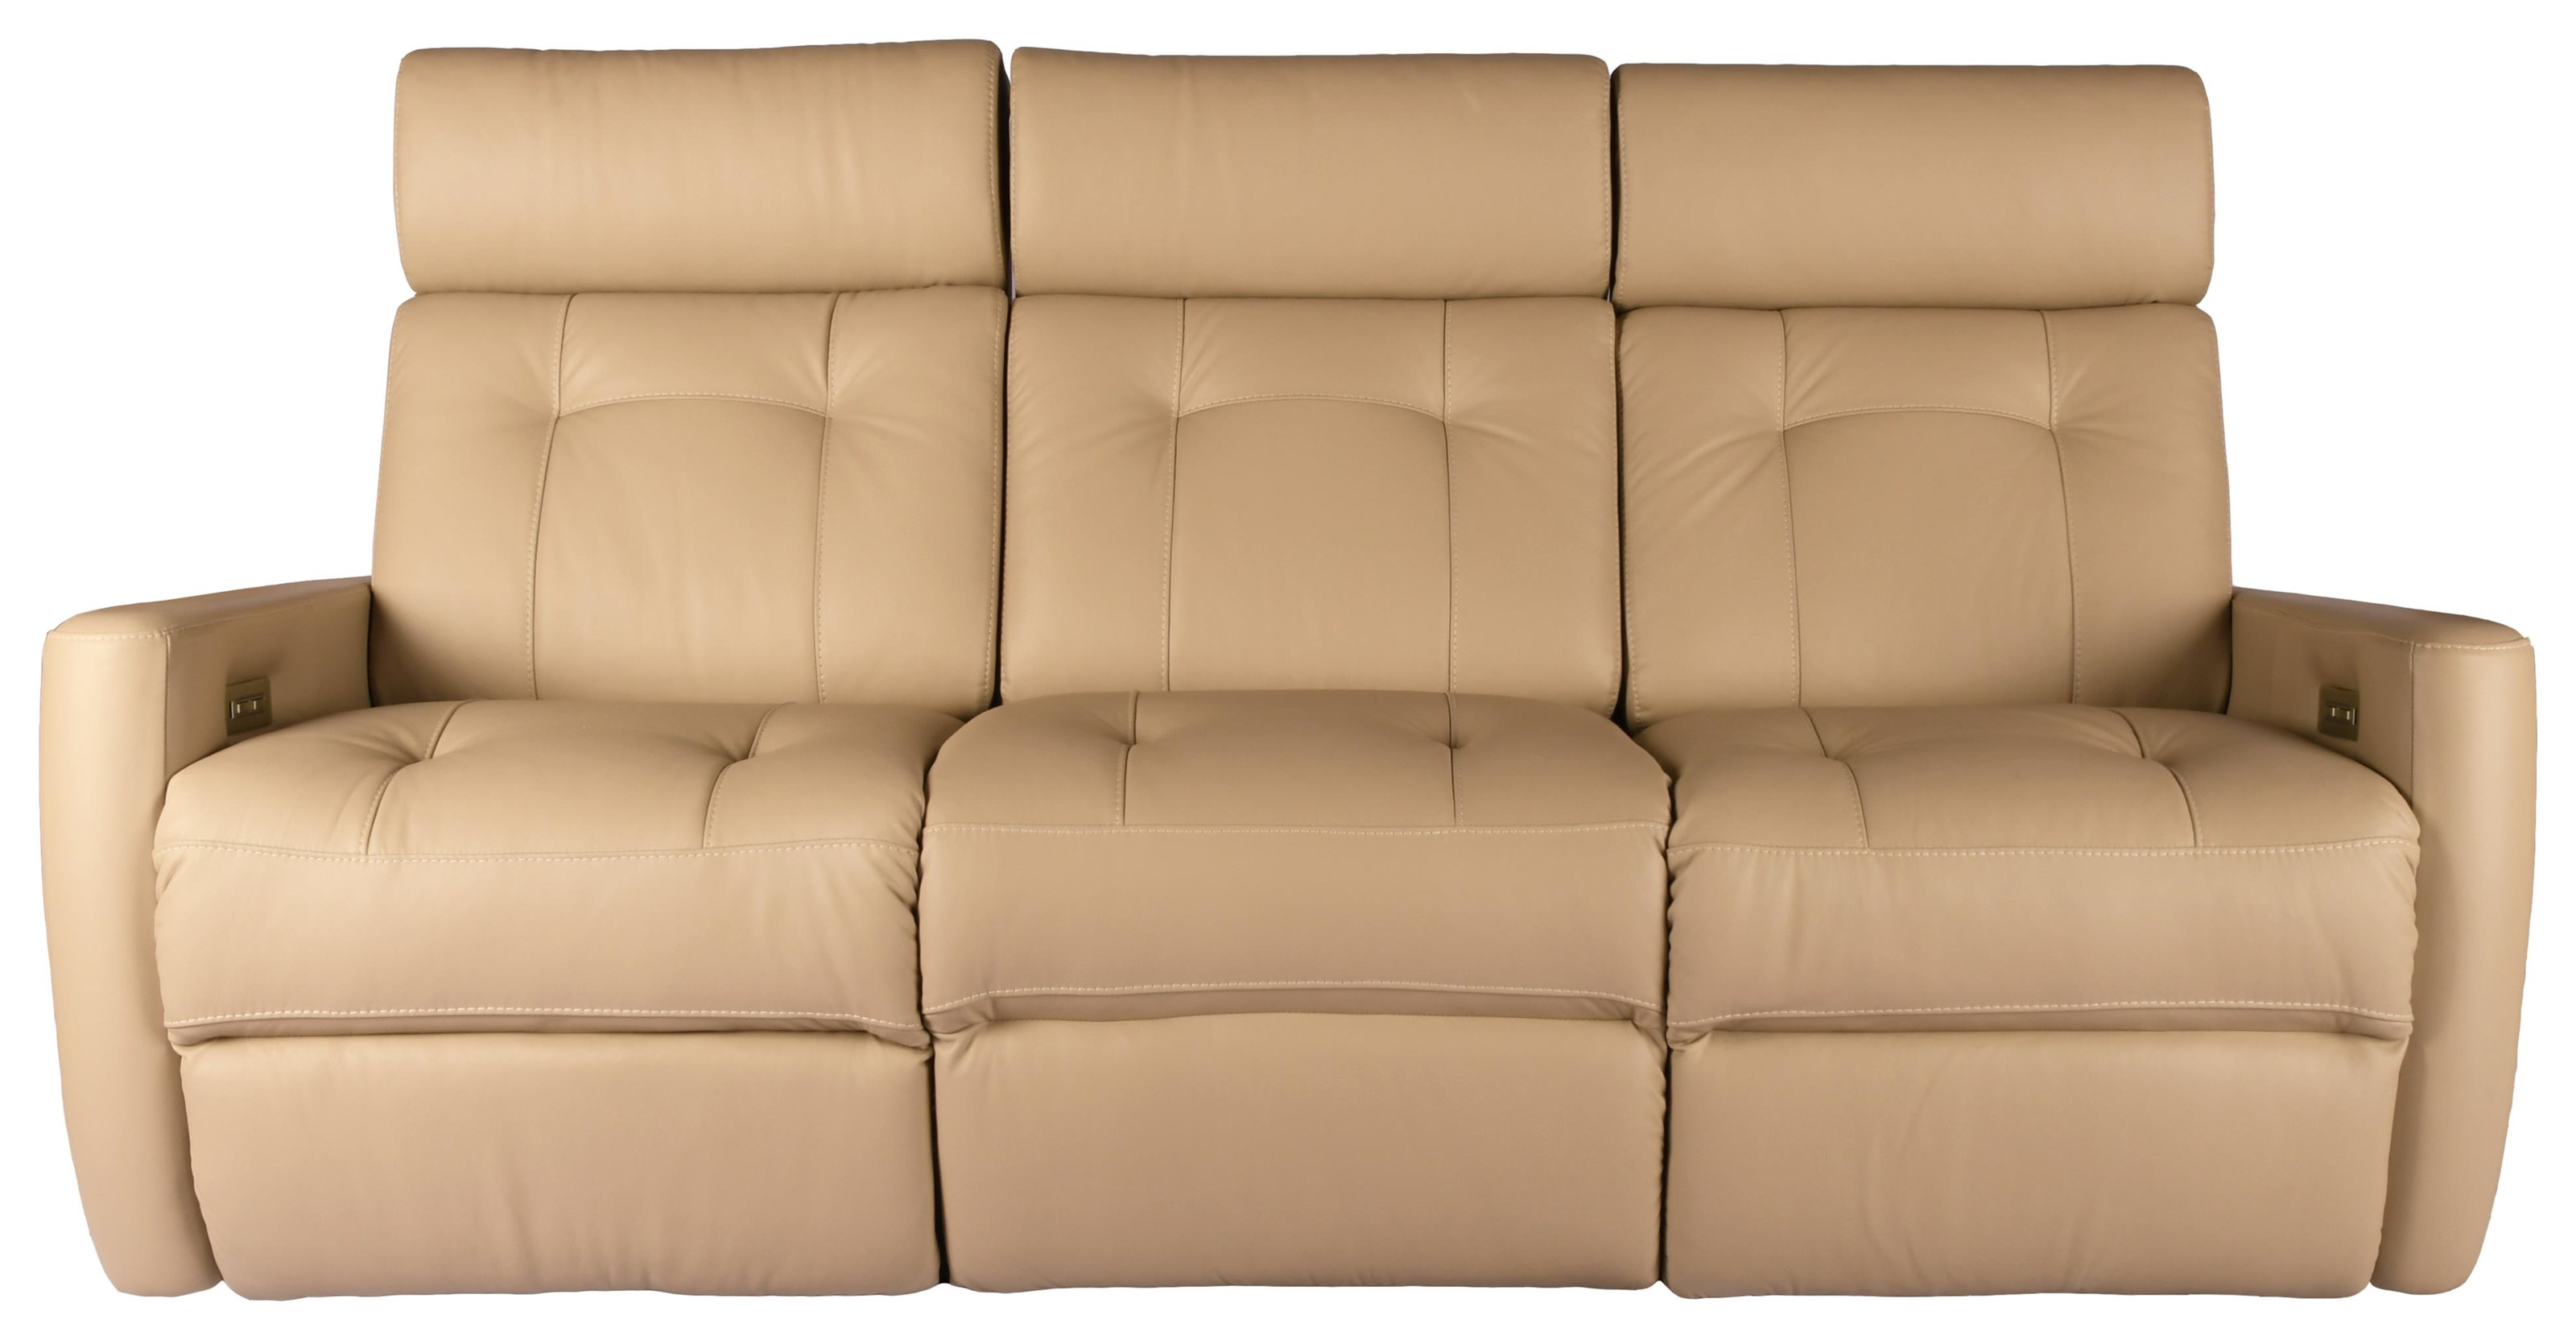 Braemore Power Reclining Sofa by Rockwood at Bennett's Furniture and Mattresses